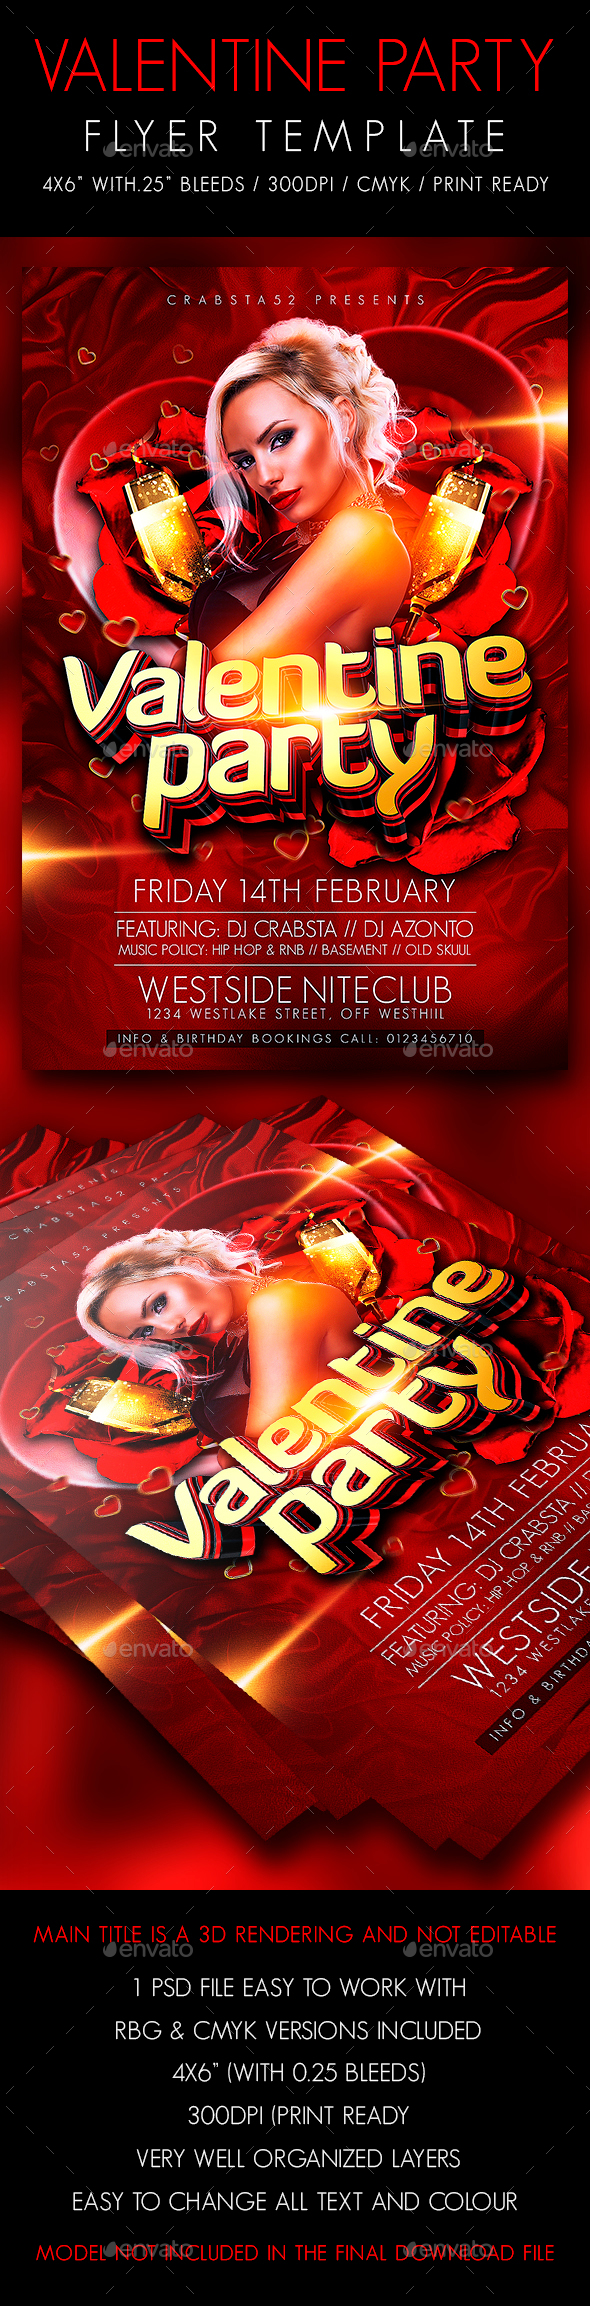 Valentine Party Flyer Template - Flyers Print Templates